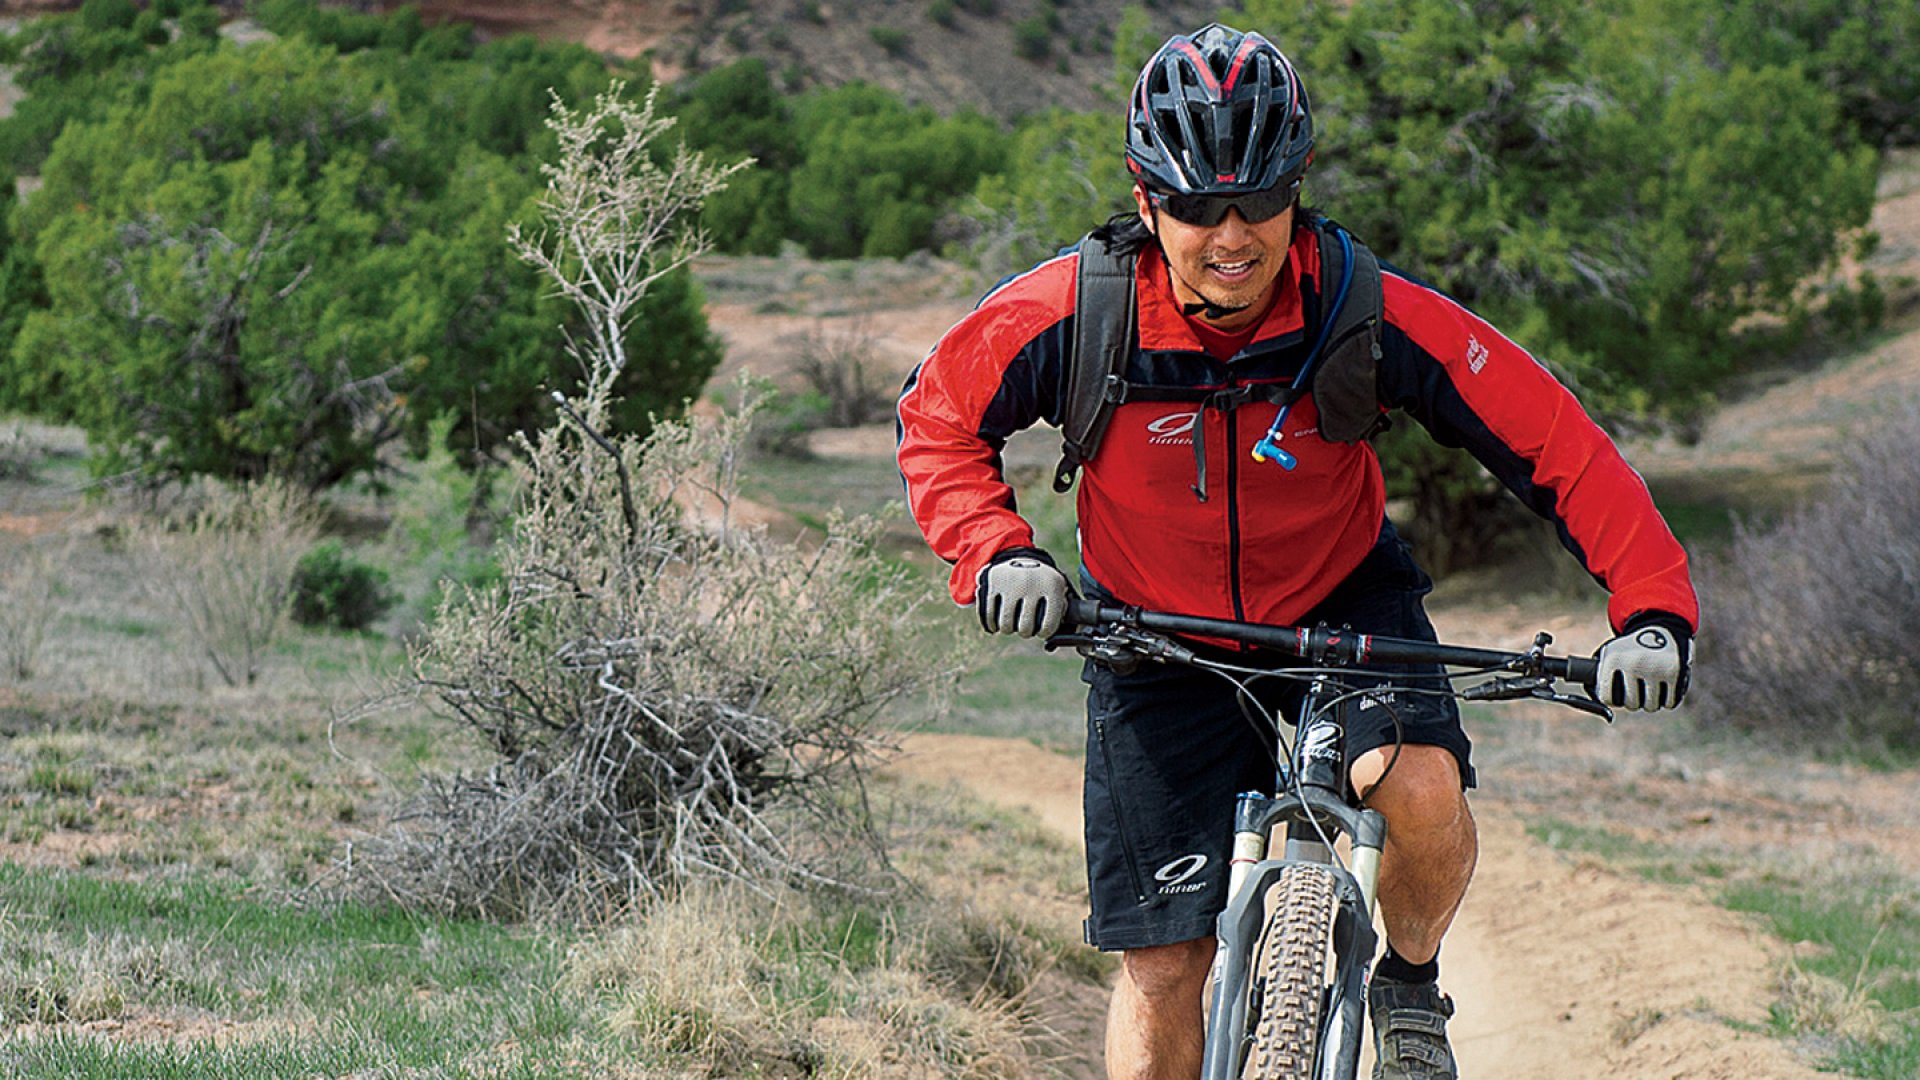 Niner Bikes's CEO, Chris Sugai, hard at work testing one of his company's bikes.